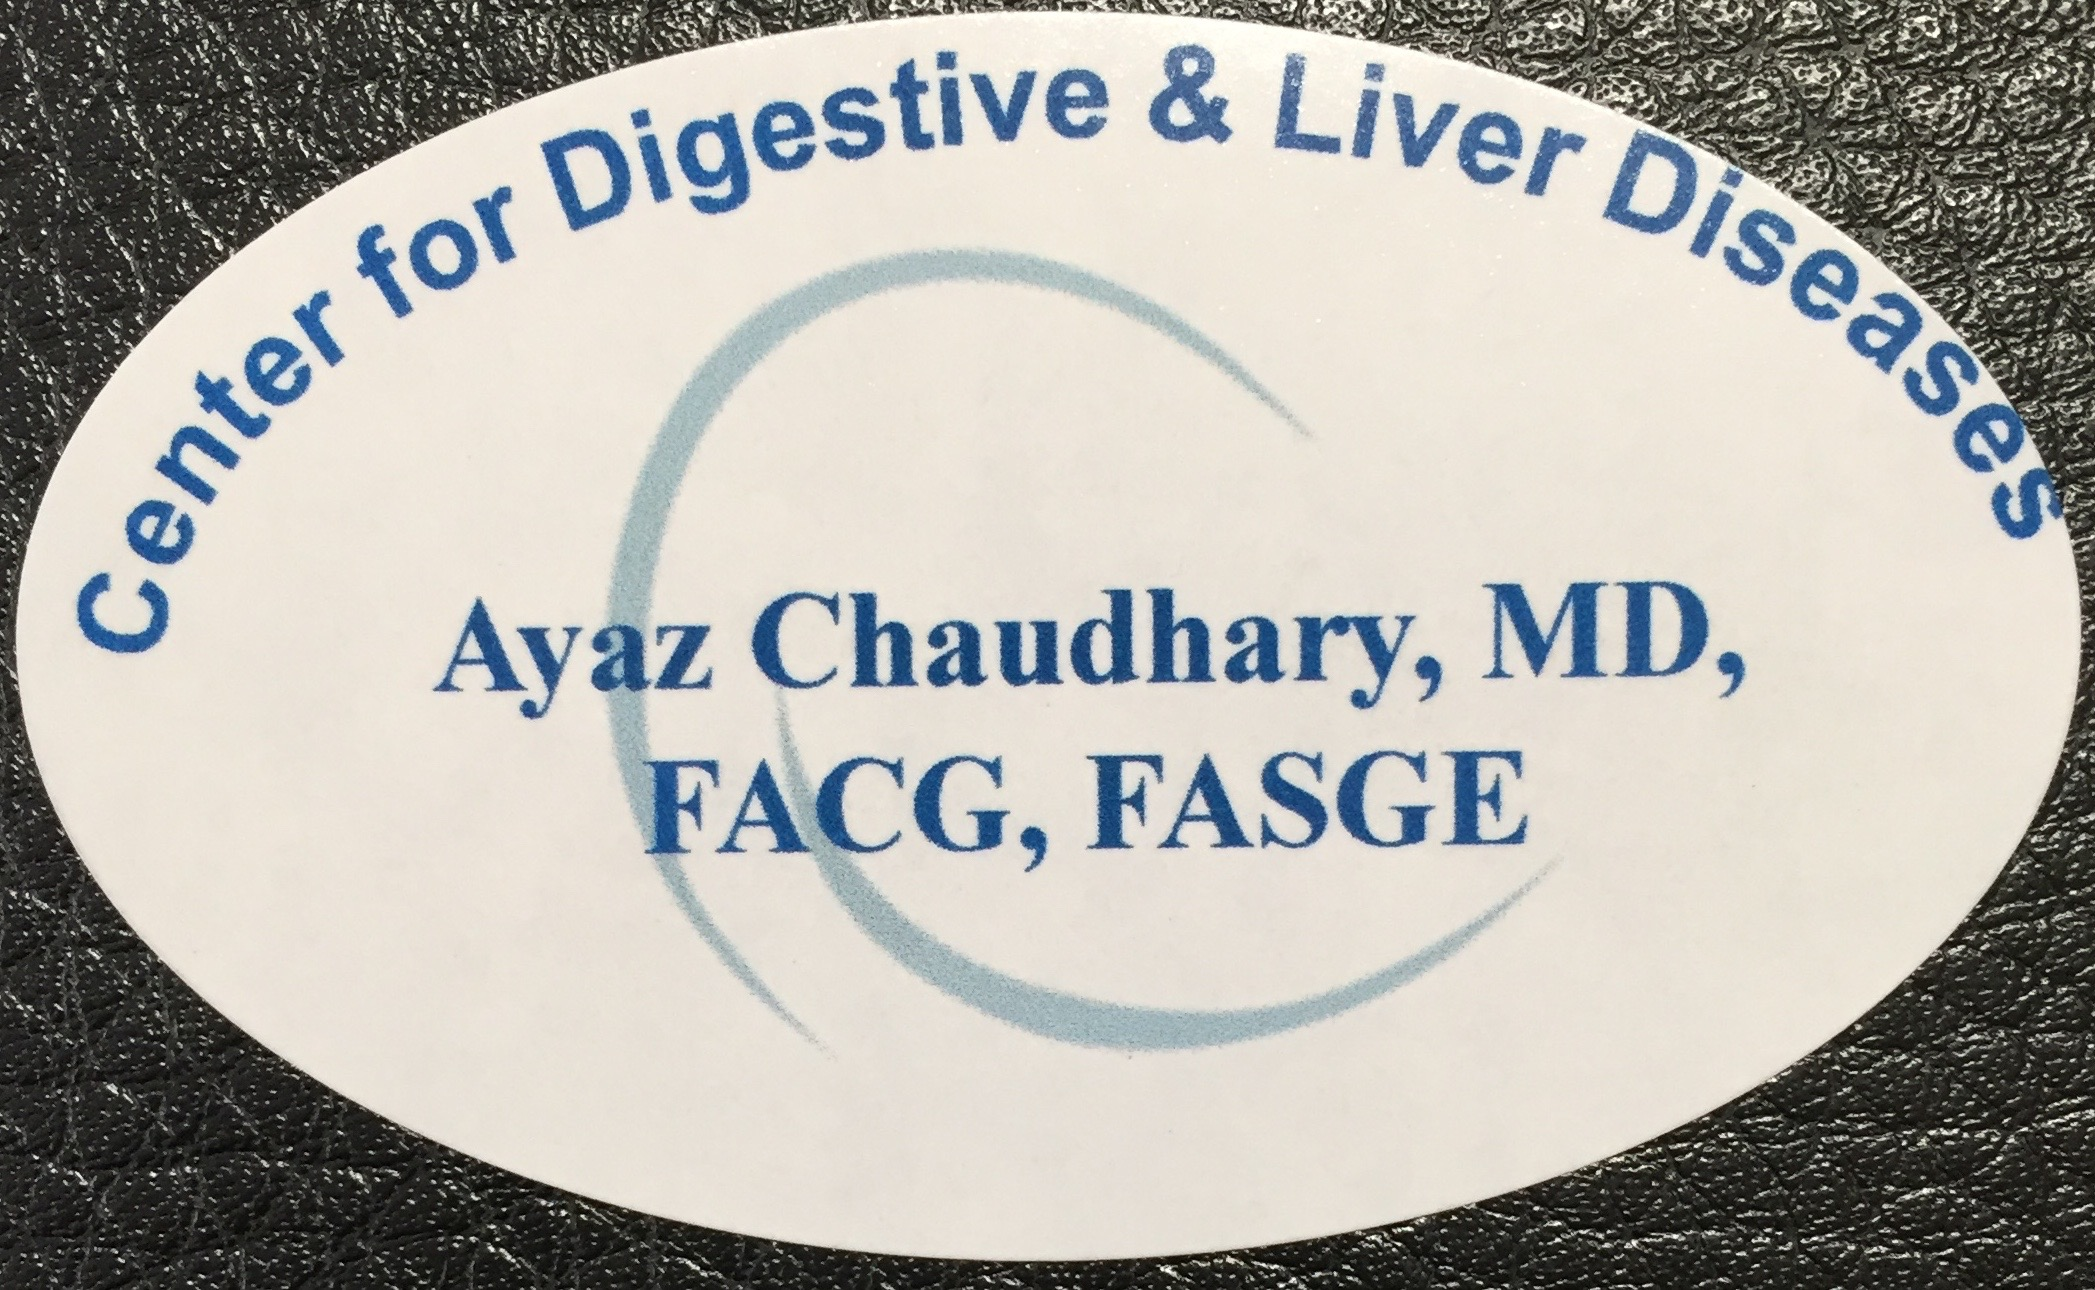 Center for Digestive and Liver Diseases Business Card